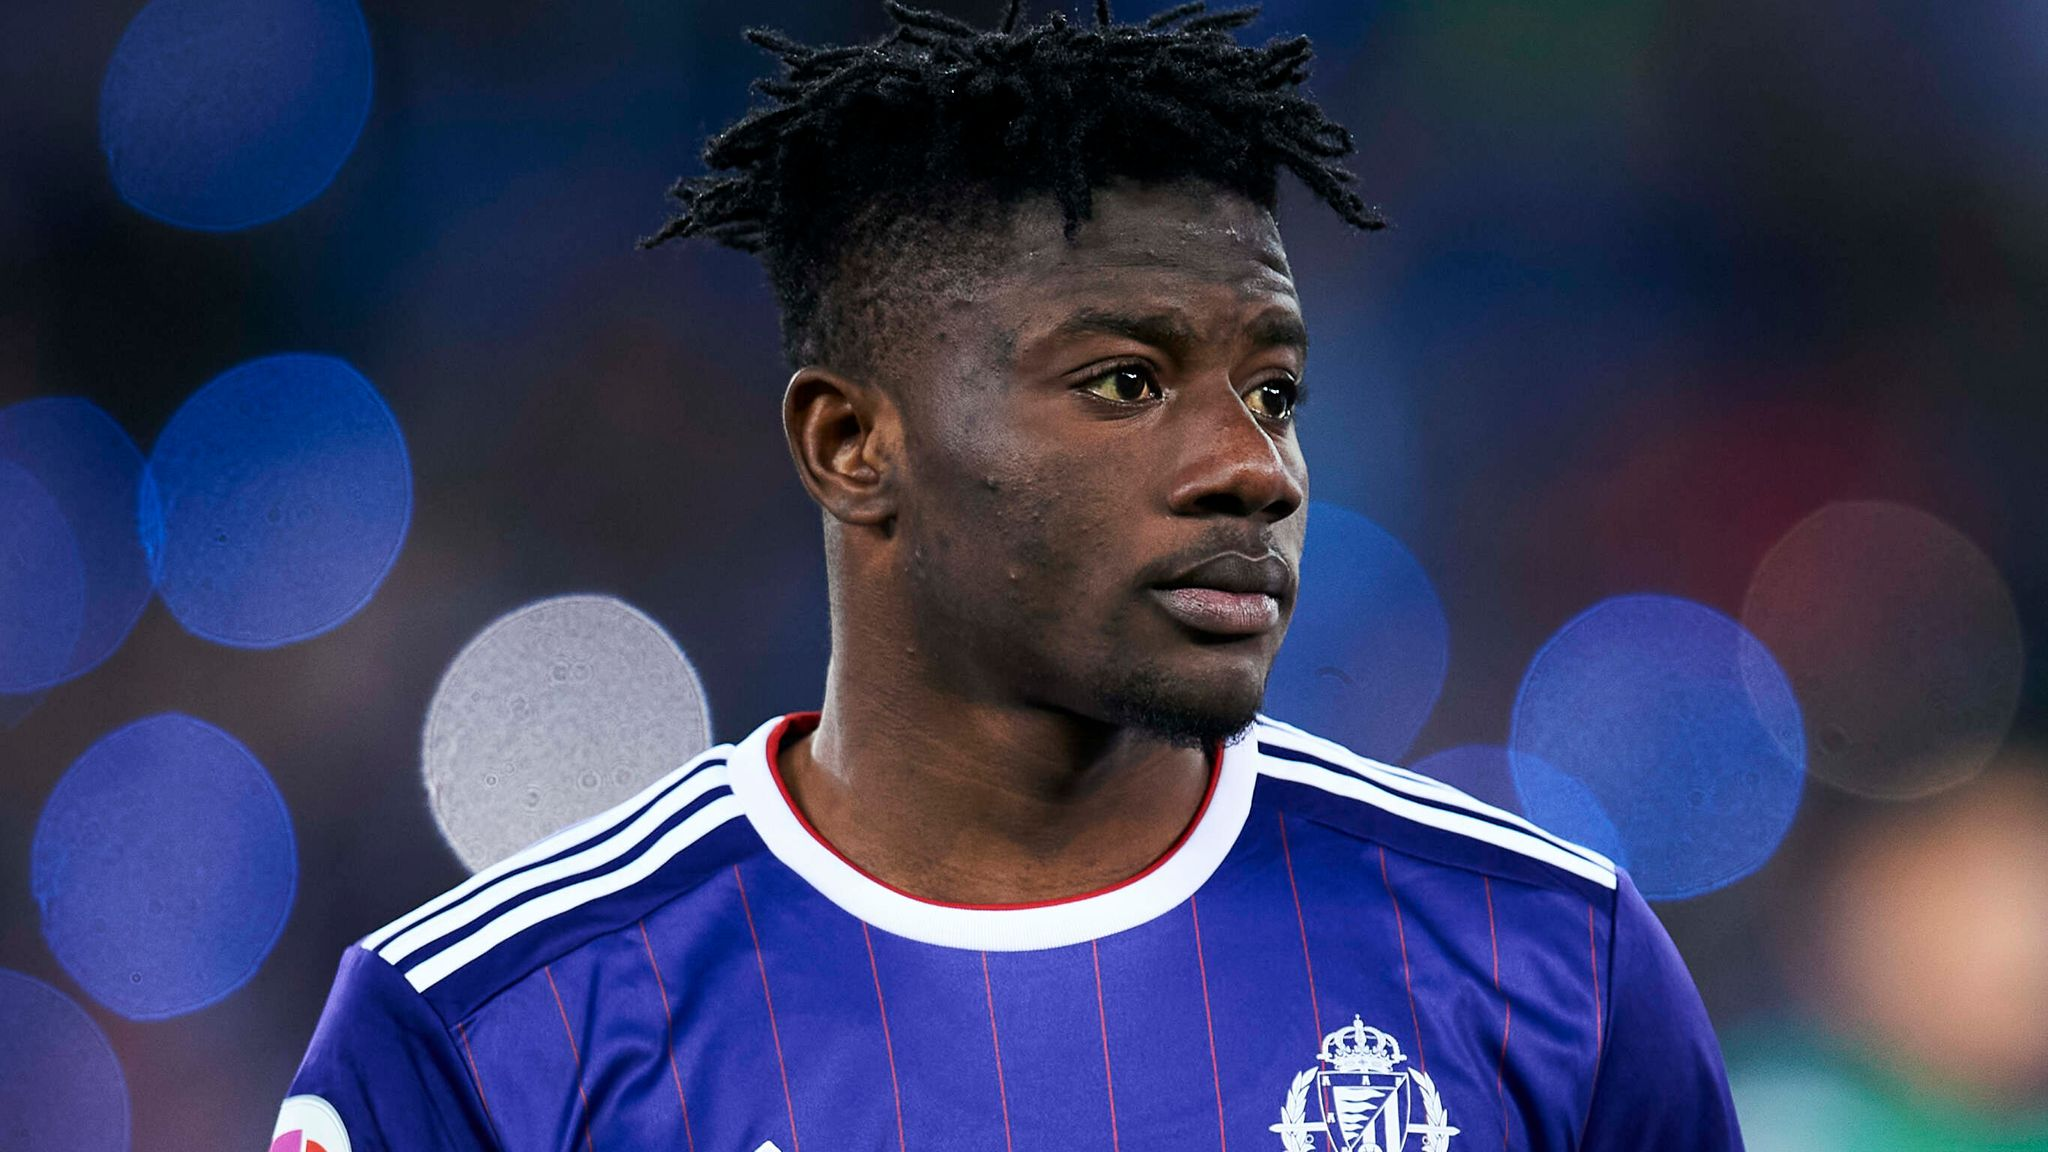 Southampton sign Mohammed Salisu for £10.9m from Real Valladolid | Football  News | Sky Sports